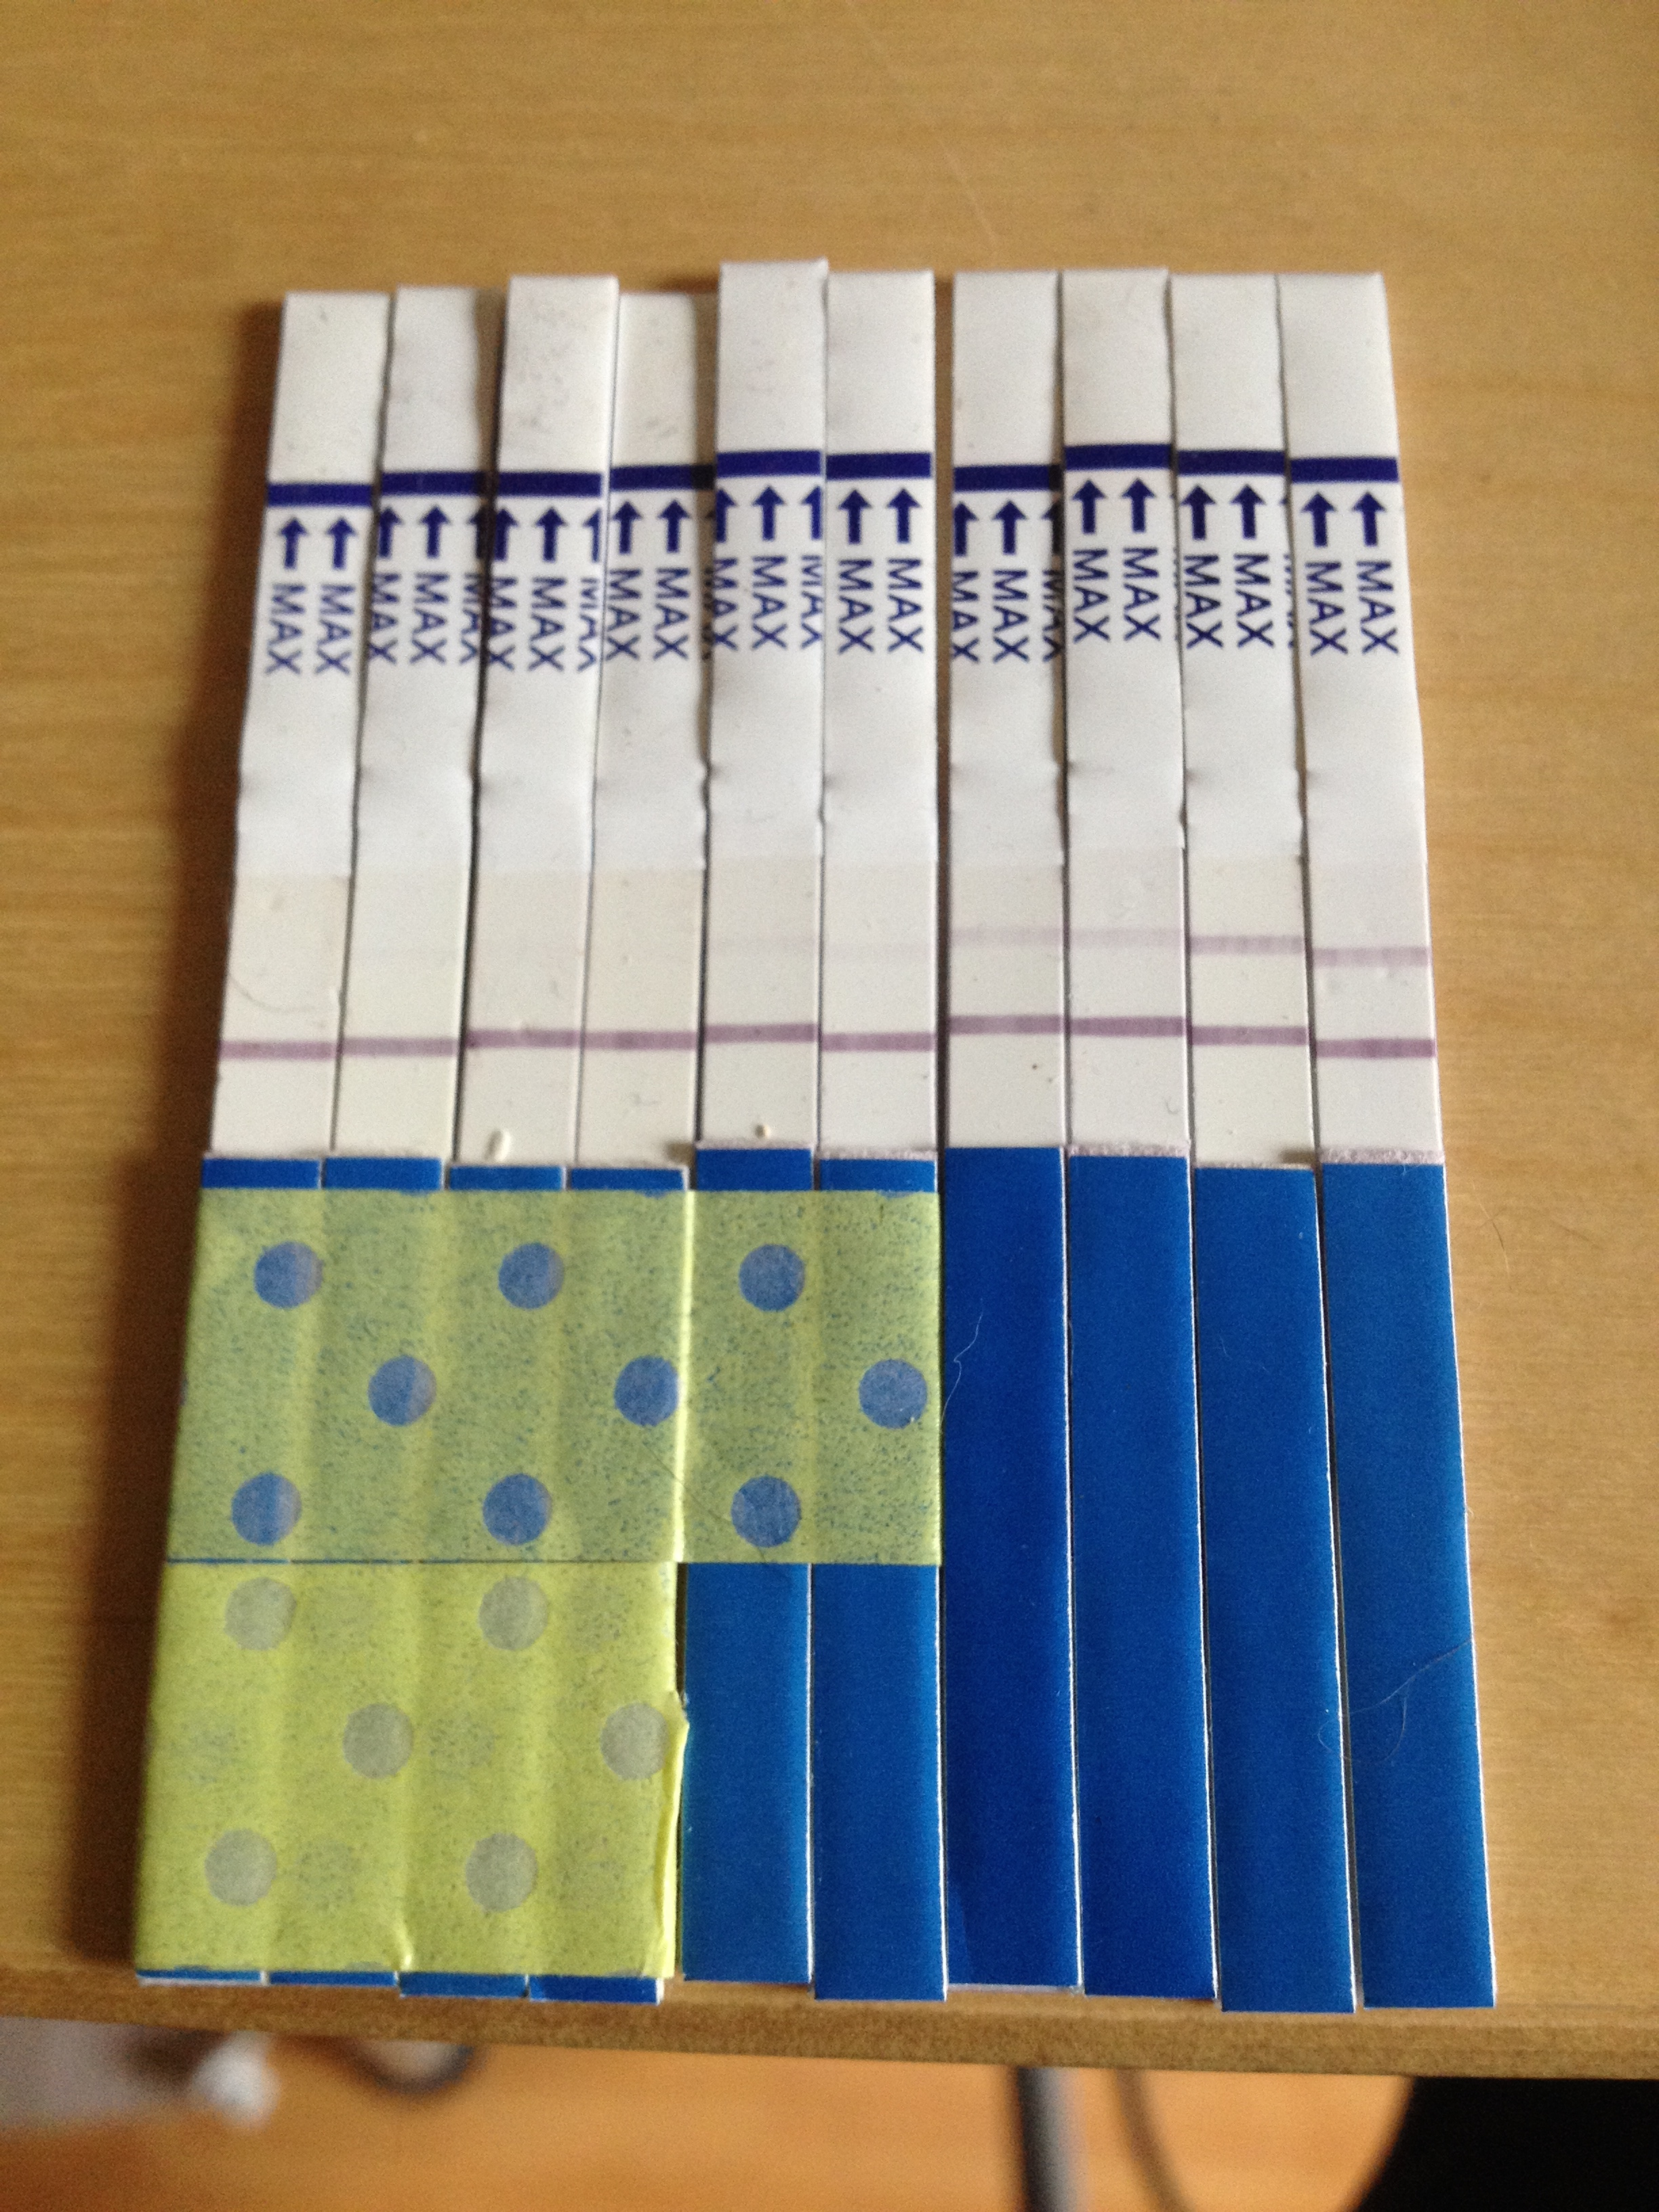 Because I knew my cycle well enough, I actually had done my first pregnancy test about 10 days after I ovulated. There was a faint line (which is hard to see here now) that I discounted as a mistake (naively). Then it showed up the next day and the day after. I finally googled and found out there are not false positives... OF COURSE!! Over the next few days the line got darker and darker until it peaked on day 26 the day of my expected menstruation. I went to the walk-in clinic that day and sure enough, I was pregnant. :)